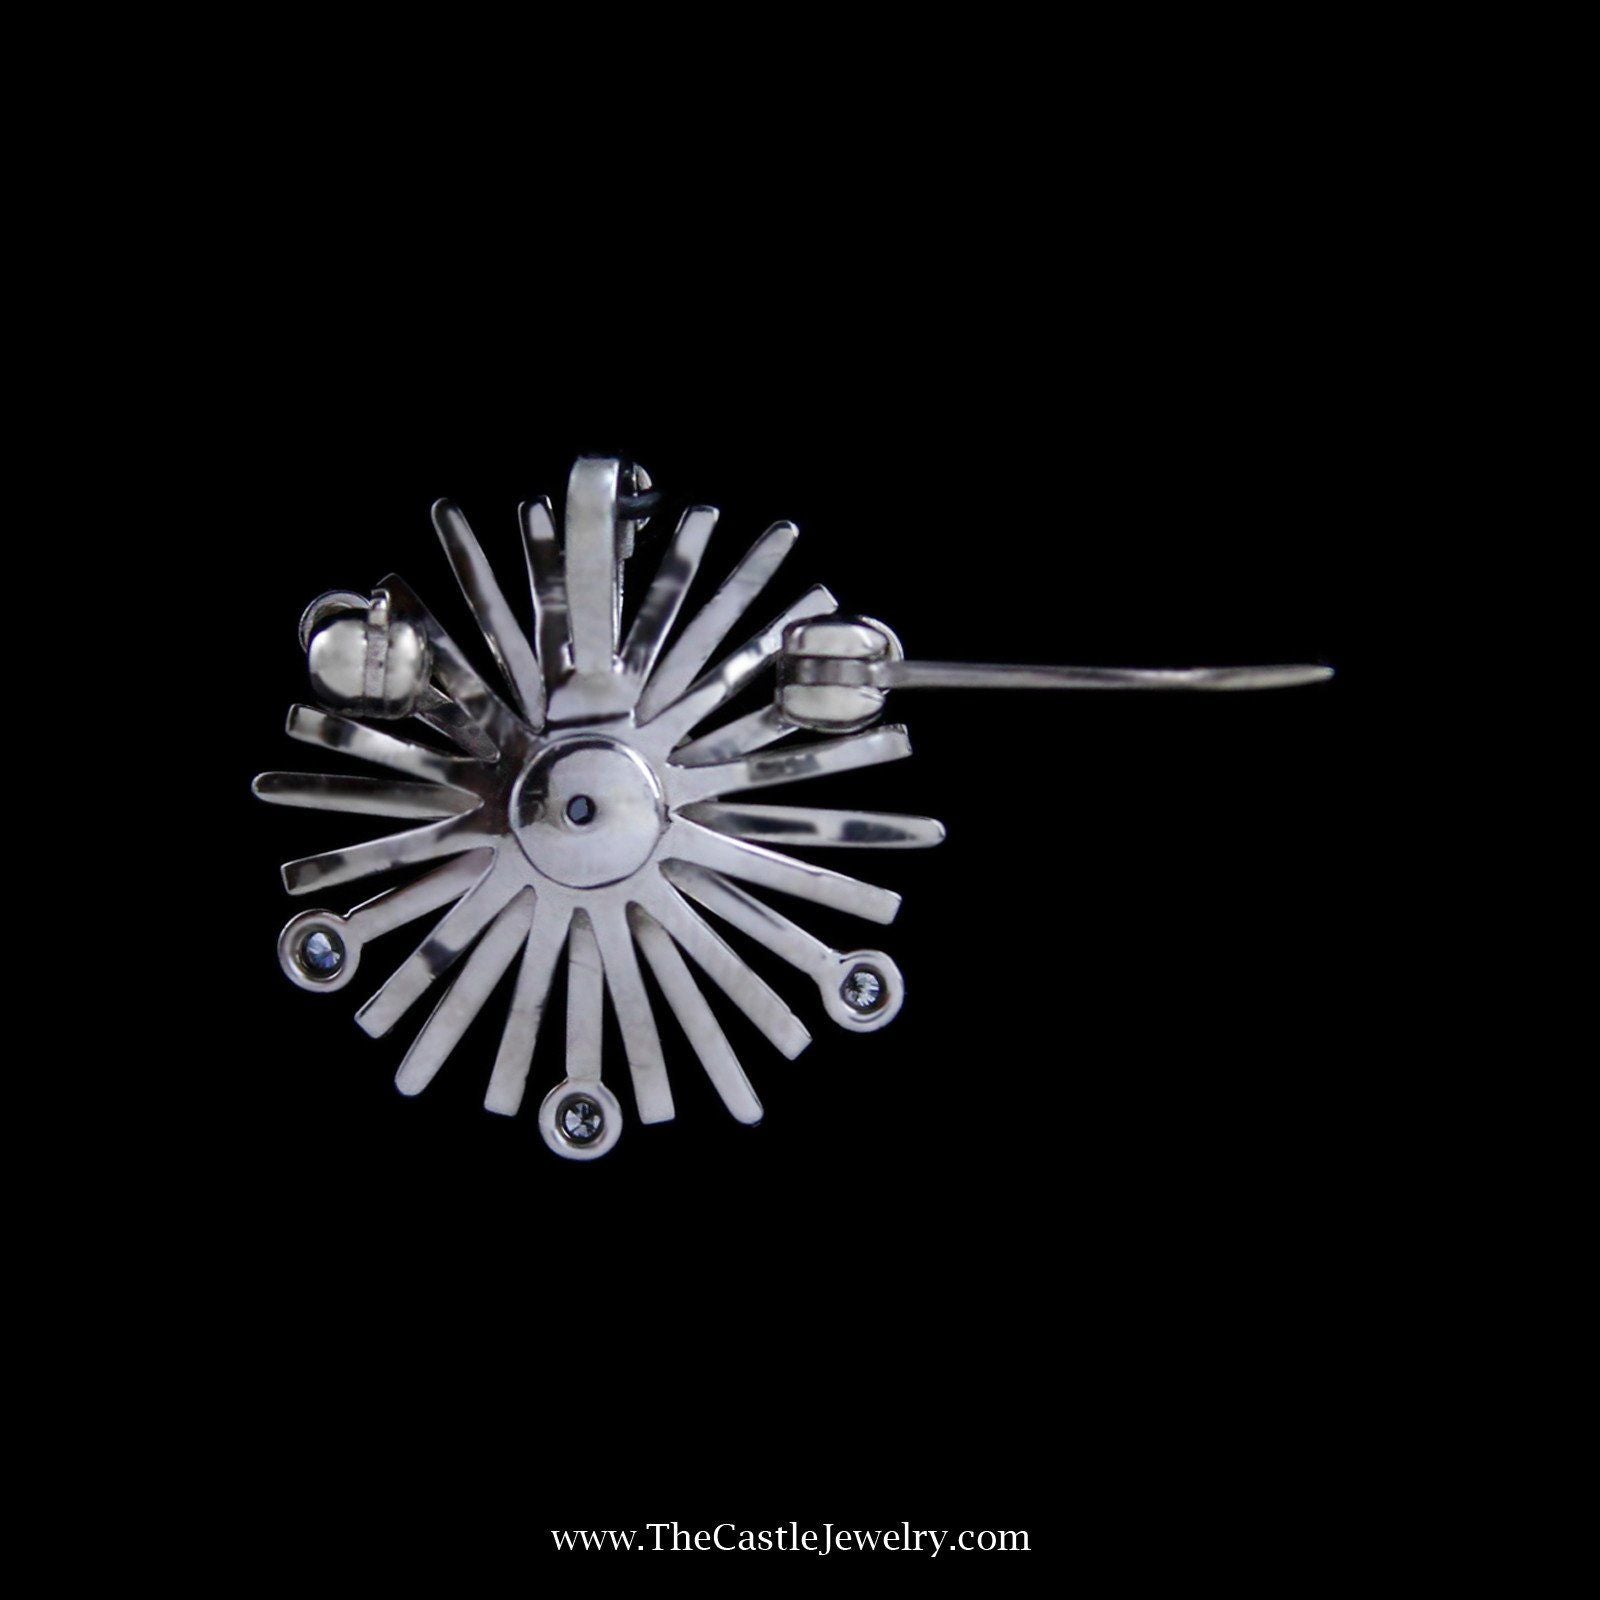 Stunning Diamond Starburst Design Pendant/Pin in 14k White Gold-2